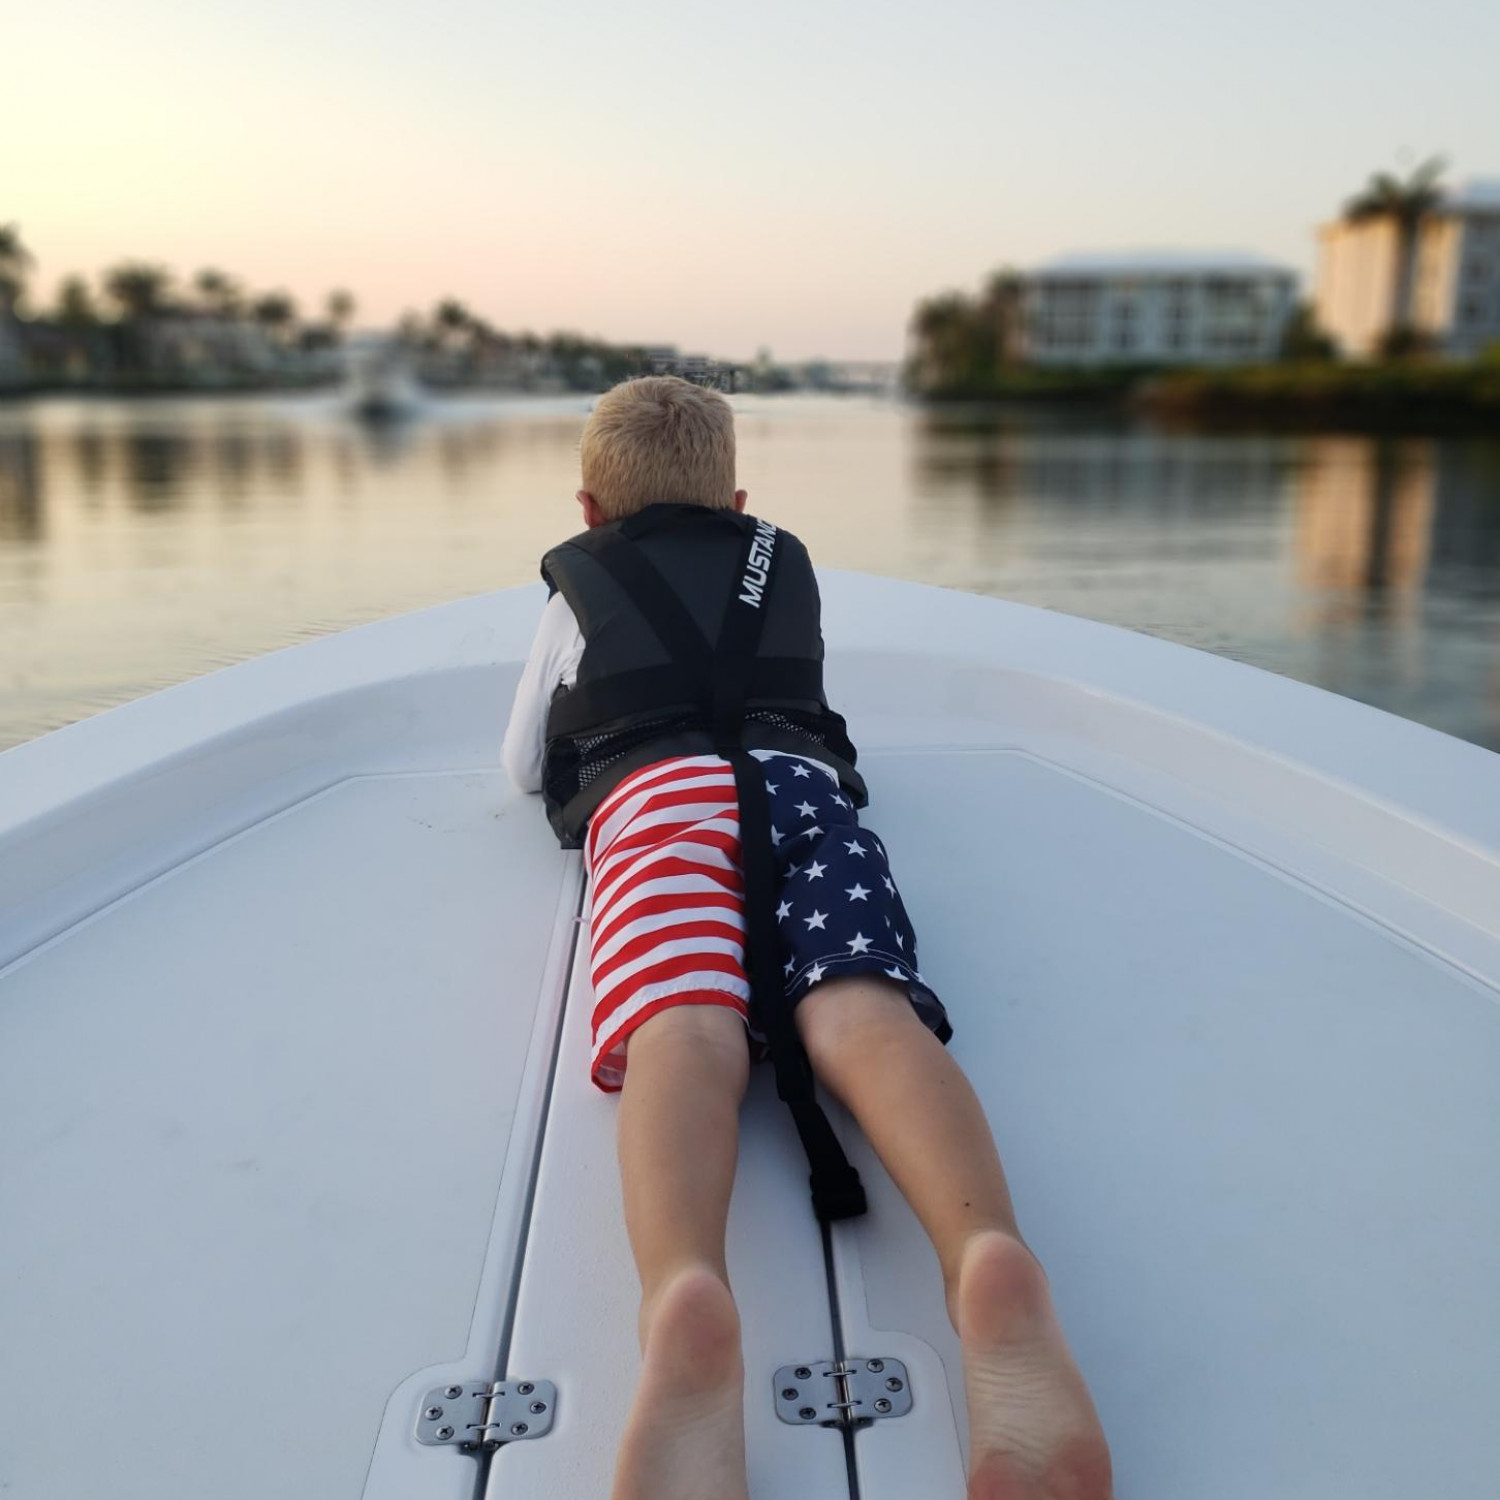 Title: Cruising - On board their Sportsman Island Bay 18 Bay Boat - Location: Delray Beach Florida. Participating in the Photo Contest #SportsmanMay2018